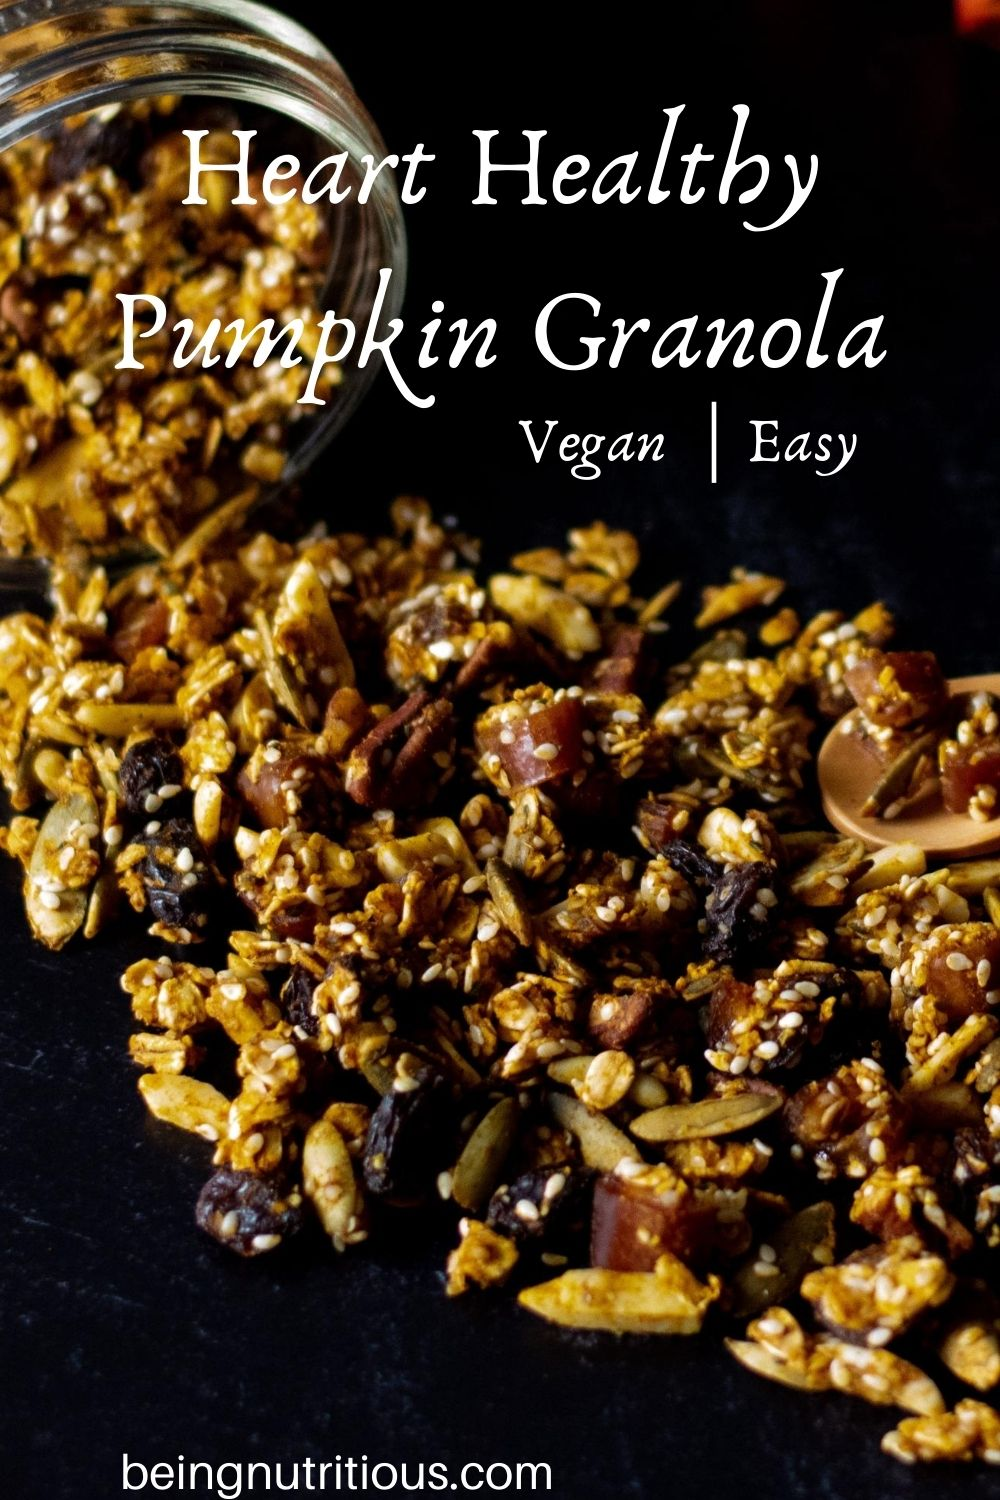 Granola spilling out of a Mason jar on a black background with text overlay: Heart Healthy Pumpkin Granola, vegan, easy.